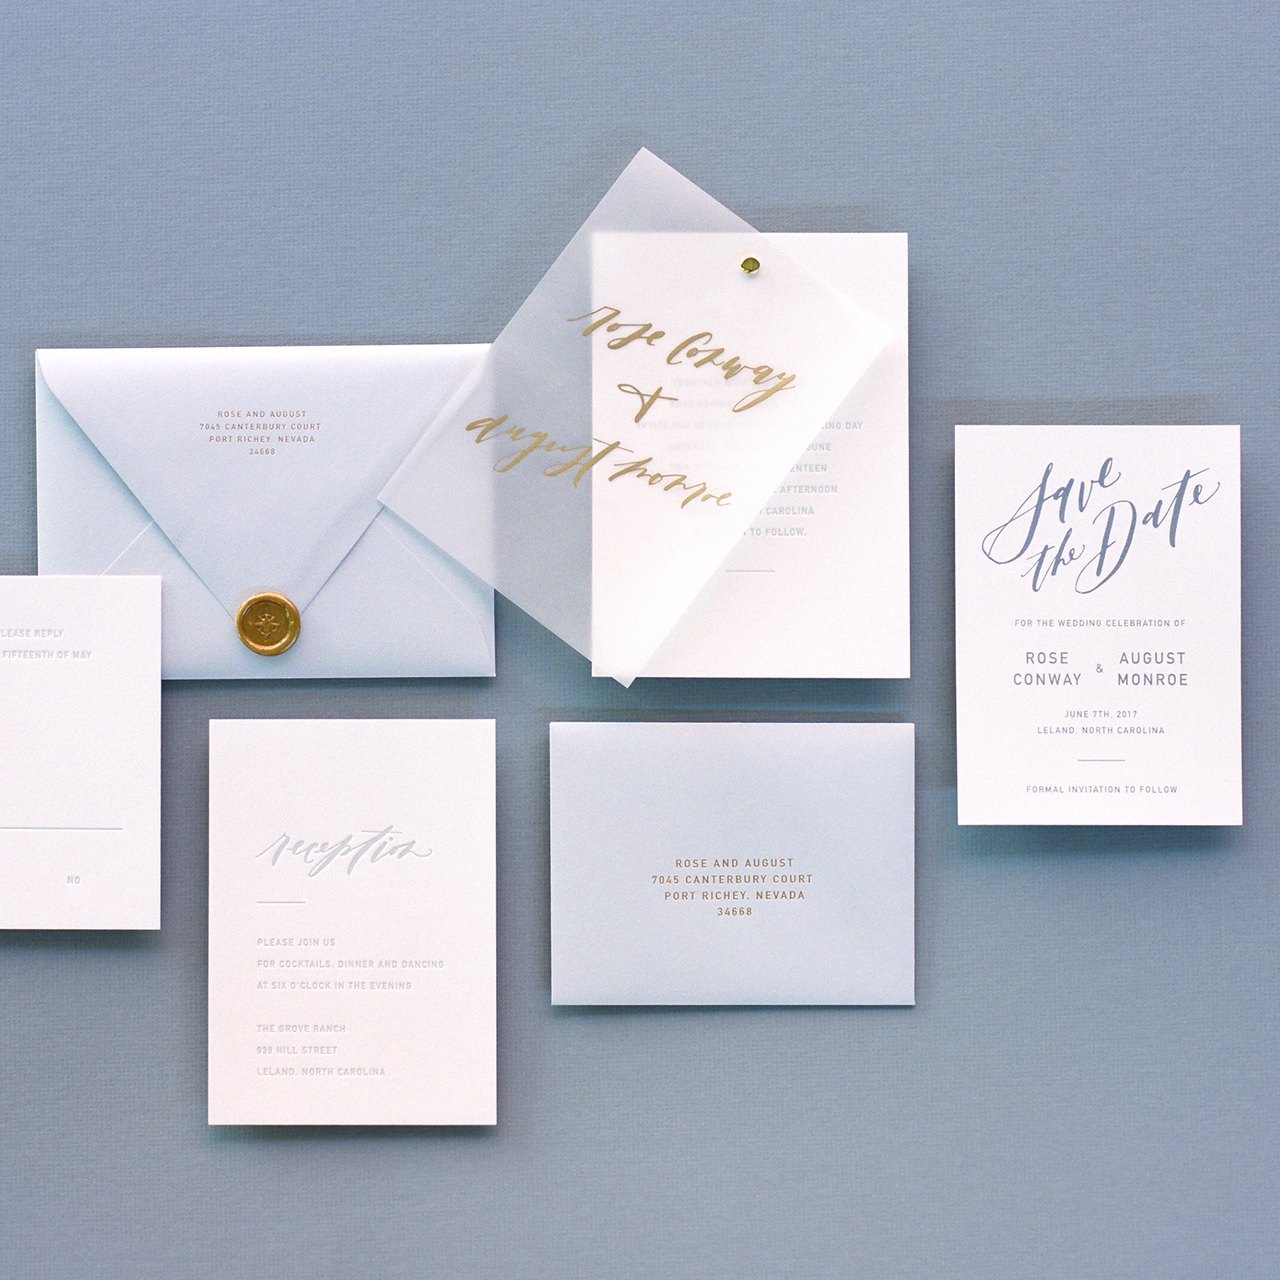 Vellum Wedding Invitation Inspiration by Owl Post Calligraphy